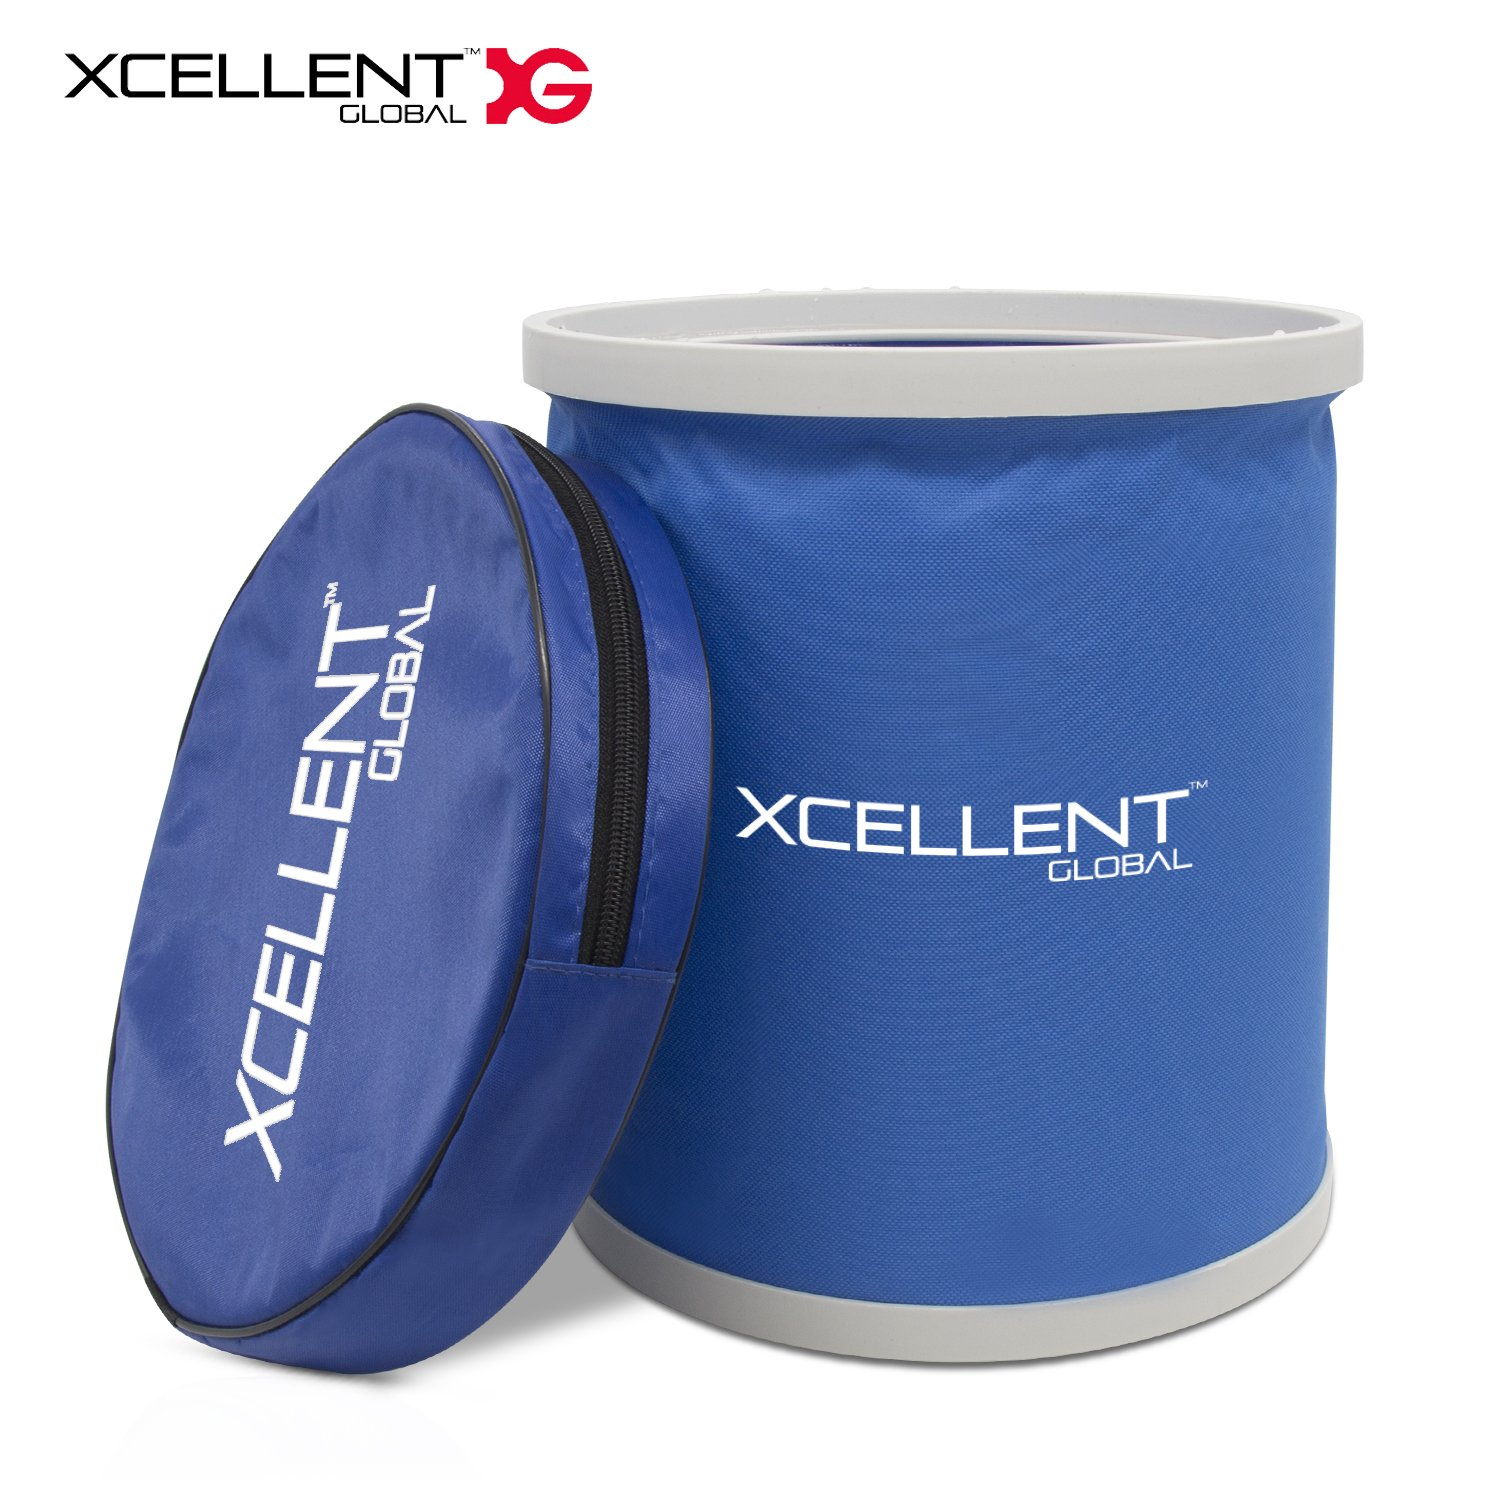 Xcellent Global Foldable Bucket Portable Outdoor Collapsible Water Storage Container for Camping Traveling Hiking Fishing Car Washing & Household Use 11L AT032